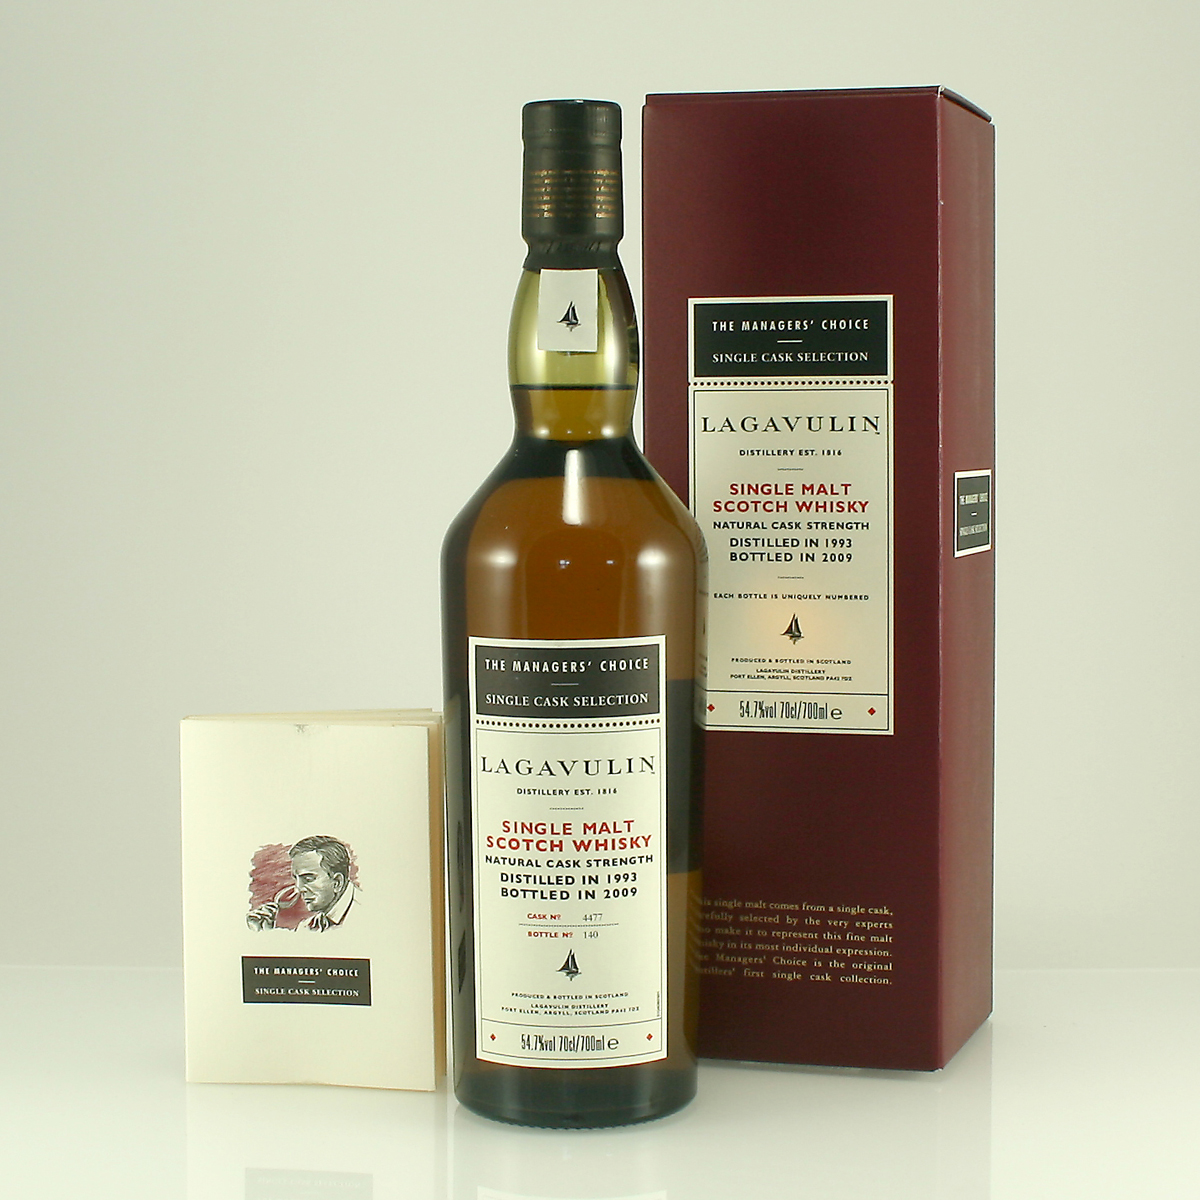 LAGAVULIN 1993 Managers' Choice 54.7% 70cl